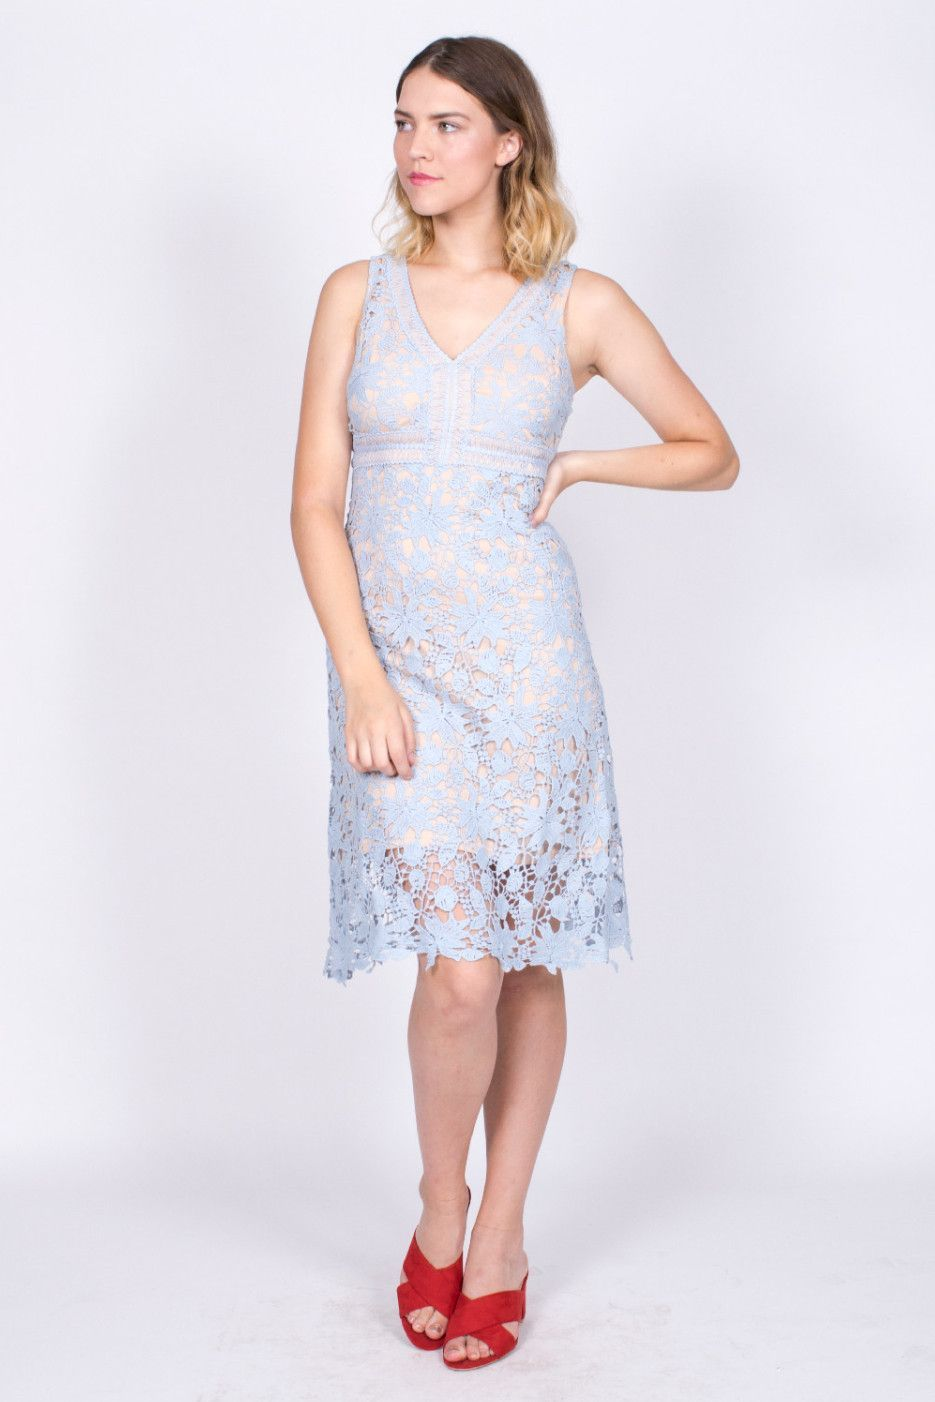 Irena dress dress wedding guests lace cocktail dresses and closure